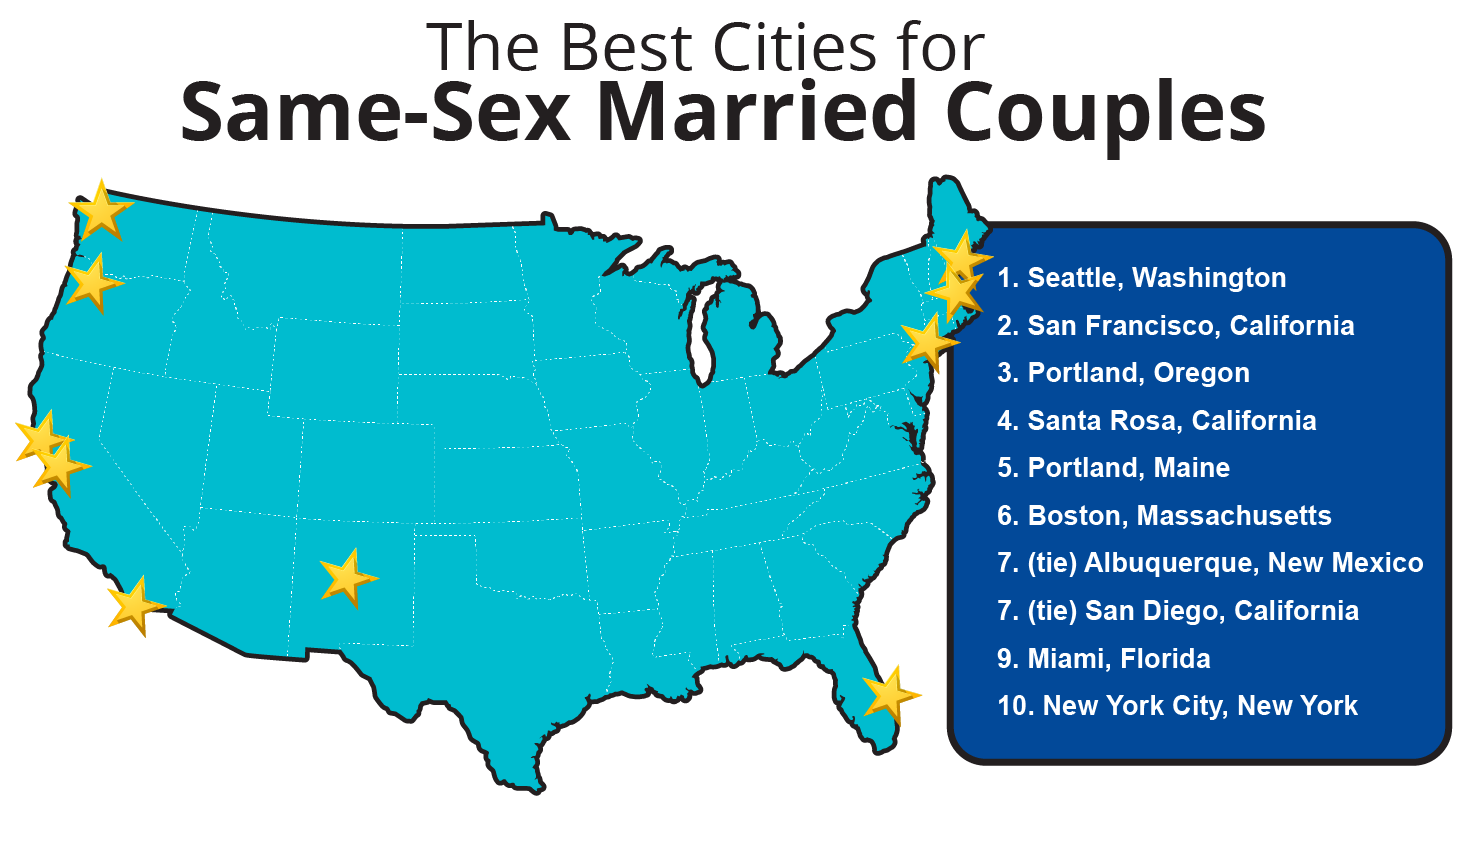 Best US Cities for Same-Sex Married Couples